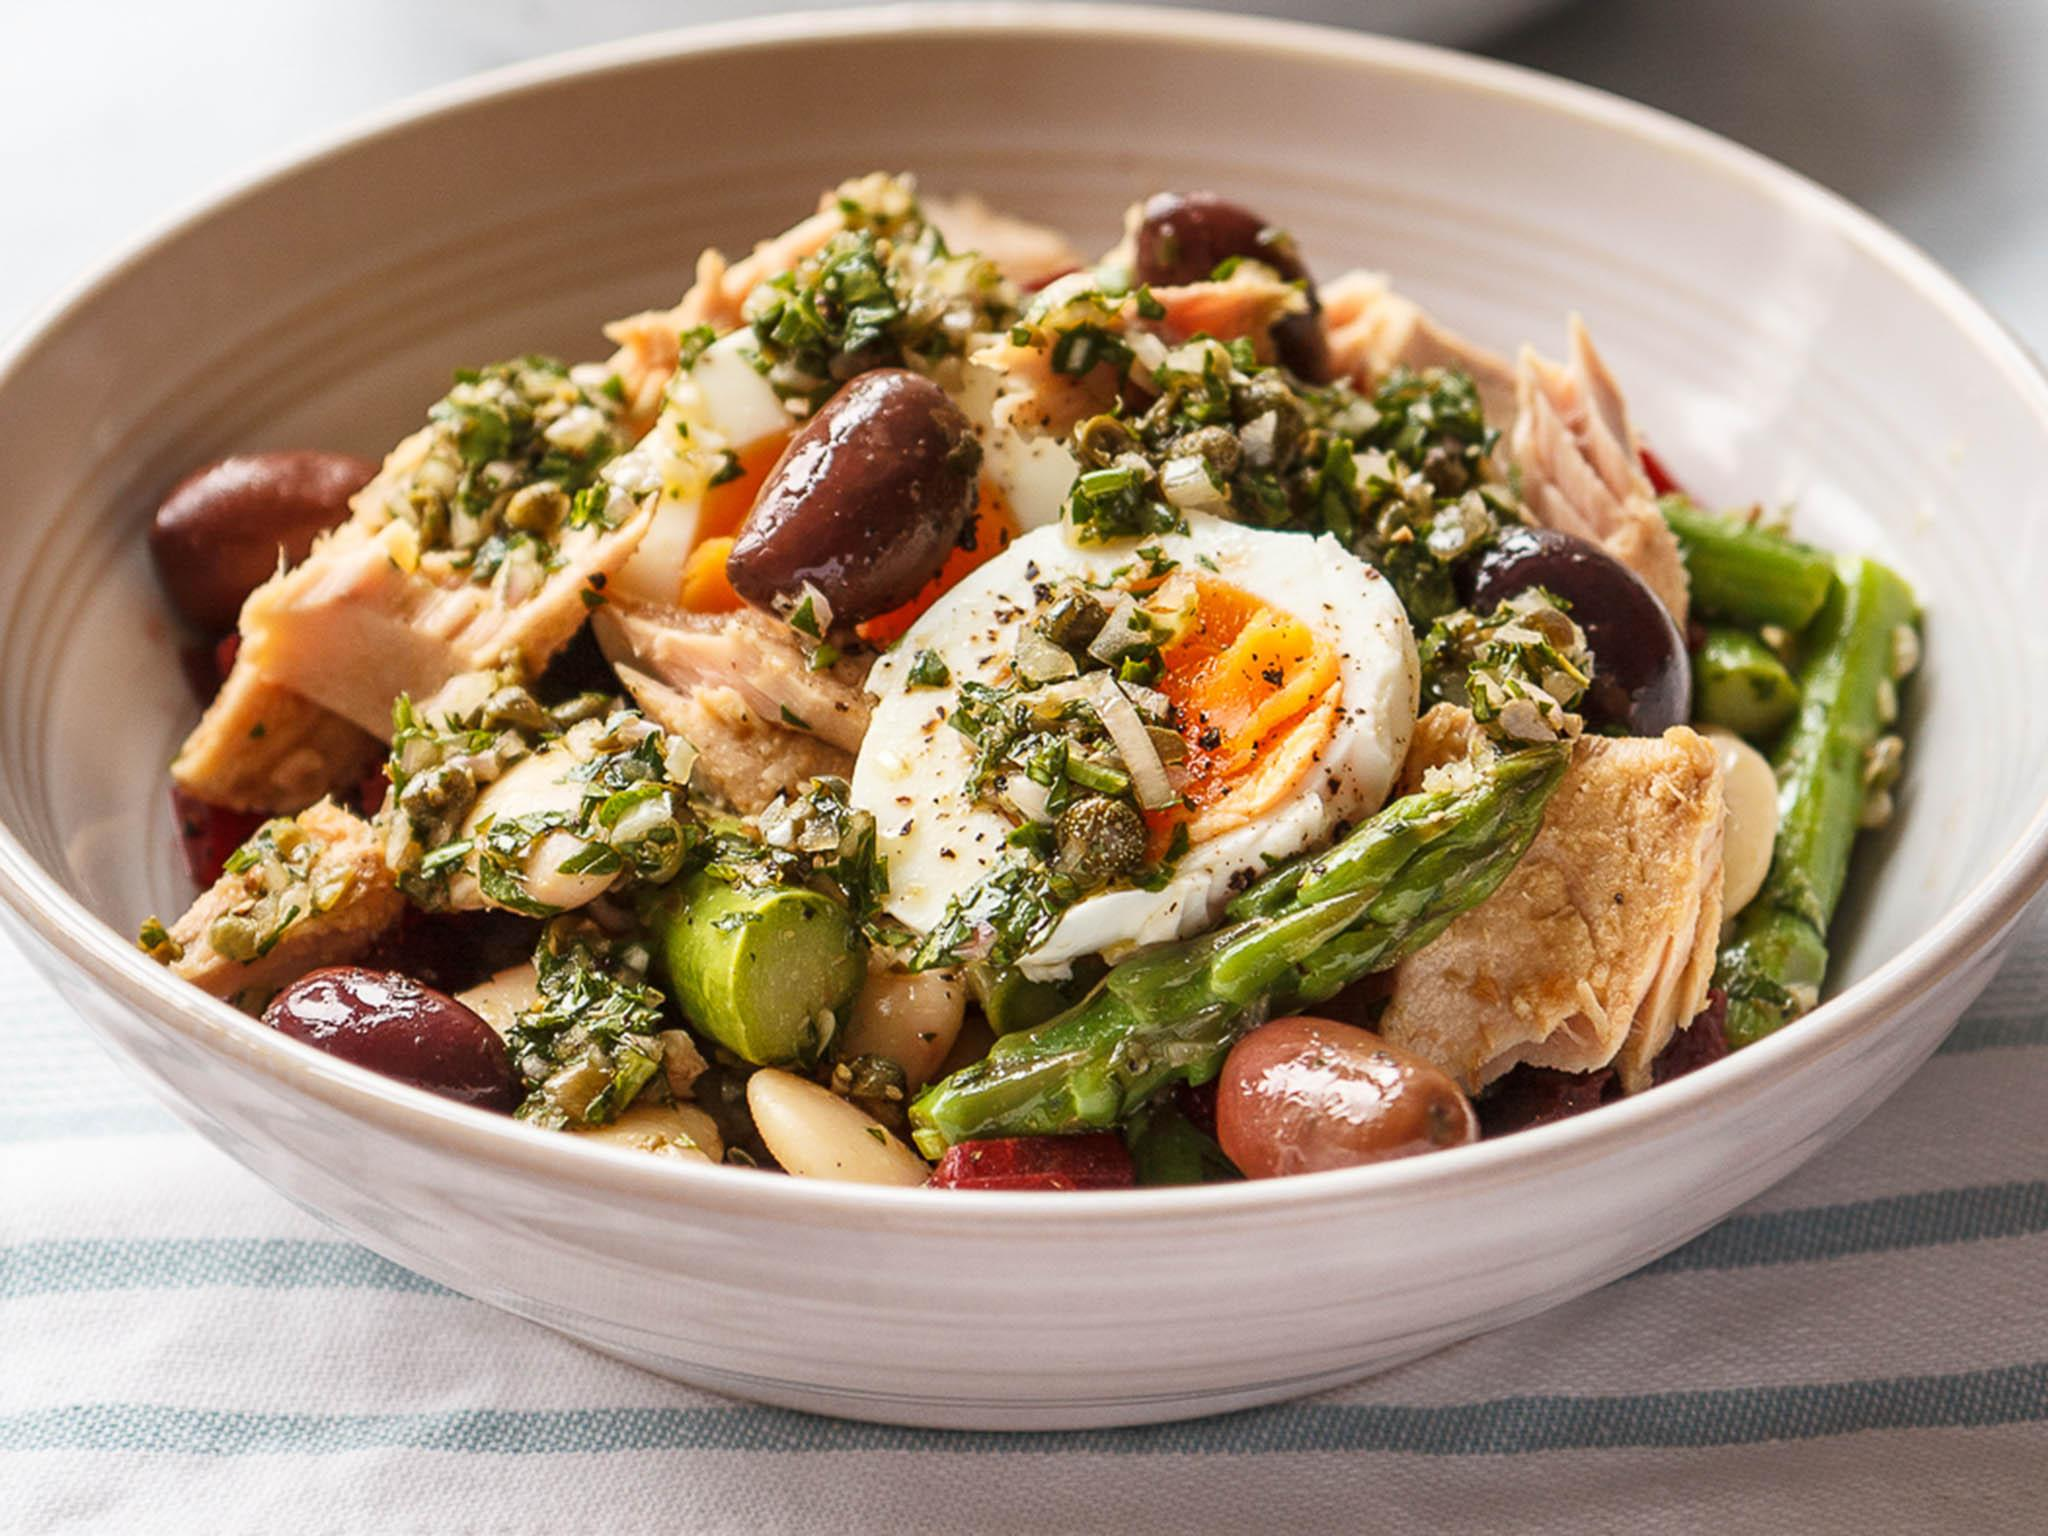 How to make an asparagus, tuna and bean salad in 20 minutes 1